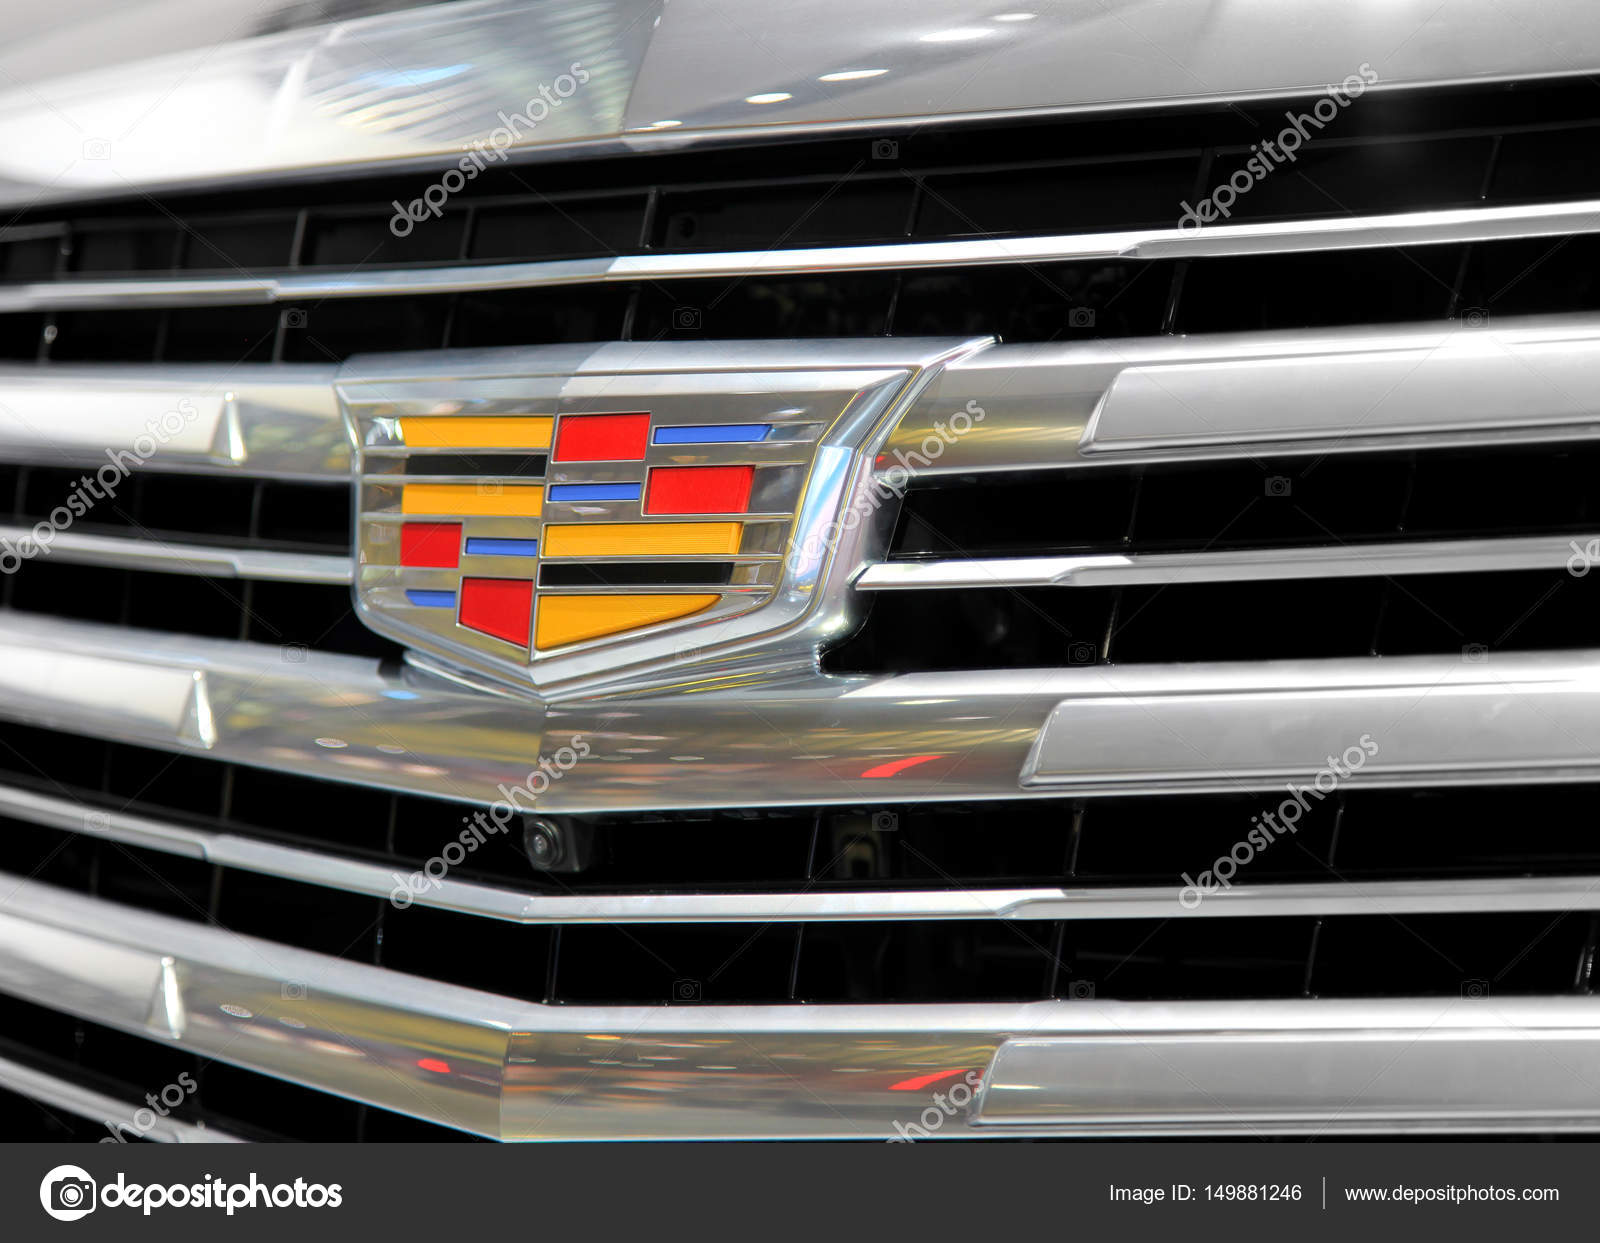 Cadillac Is A Luxury Car Division Of General Motors North America